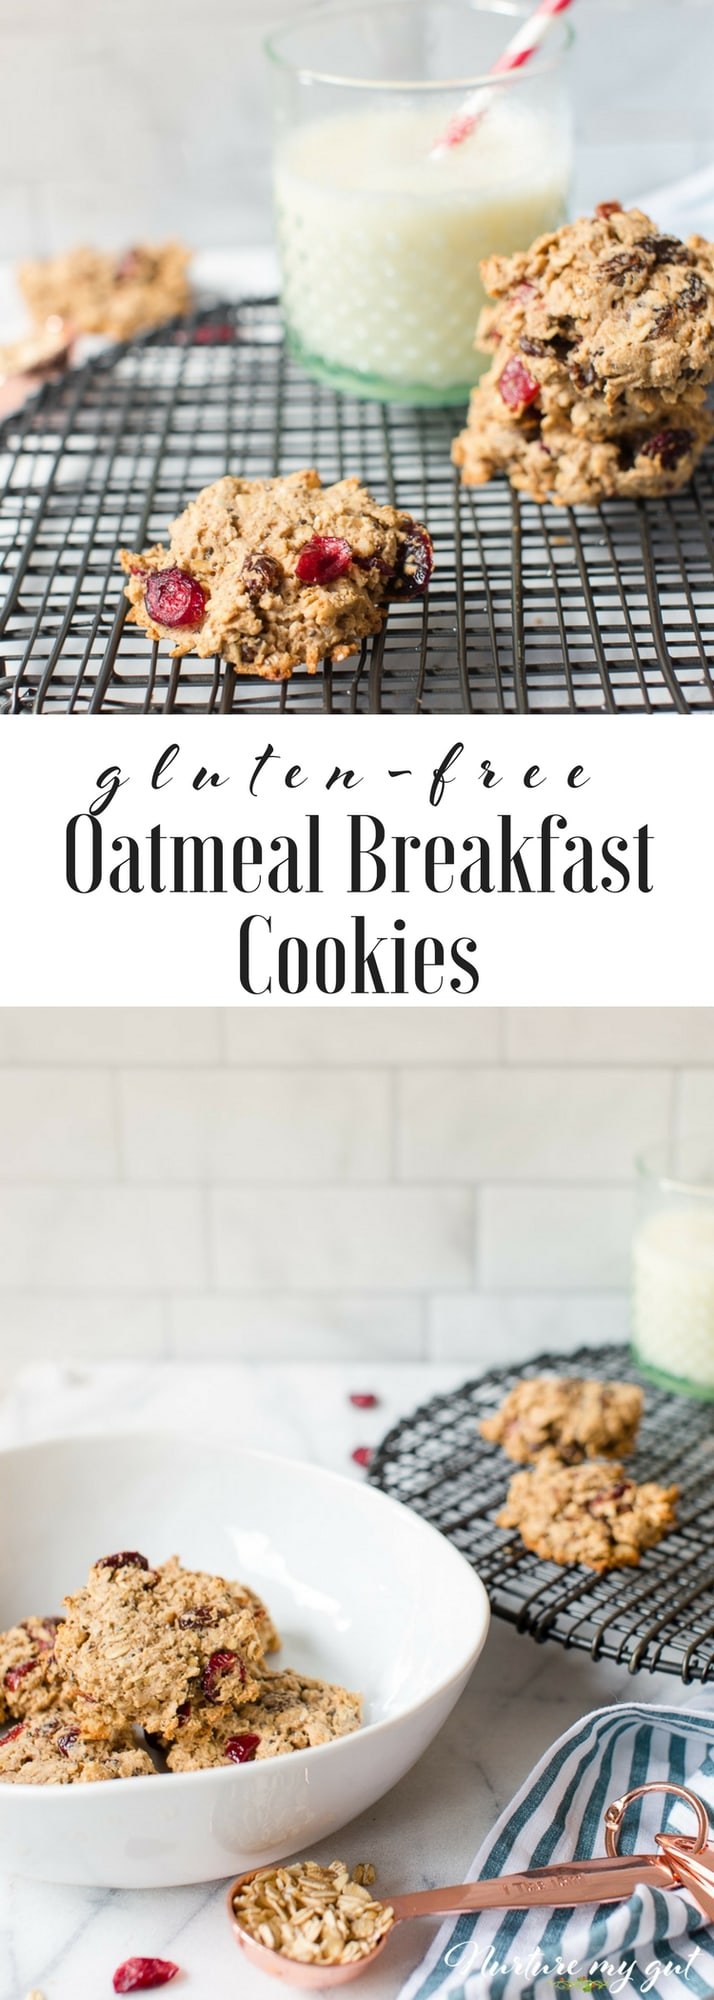 Gluten Free Oatmeal Breakfast Cookies Recipe